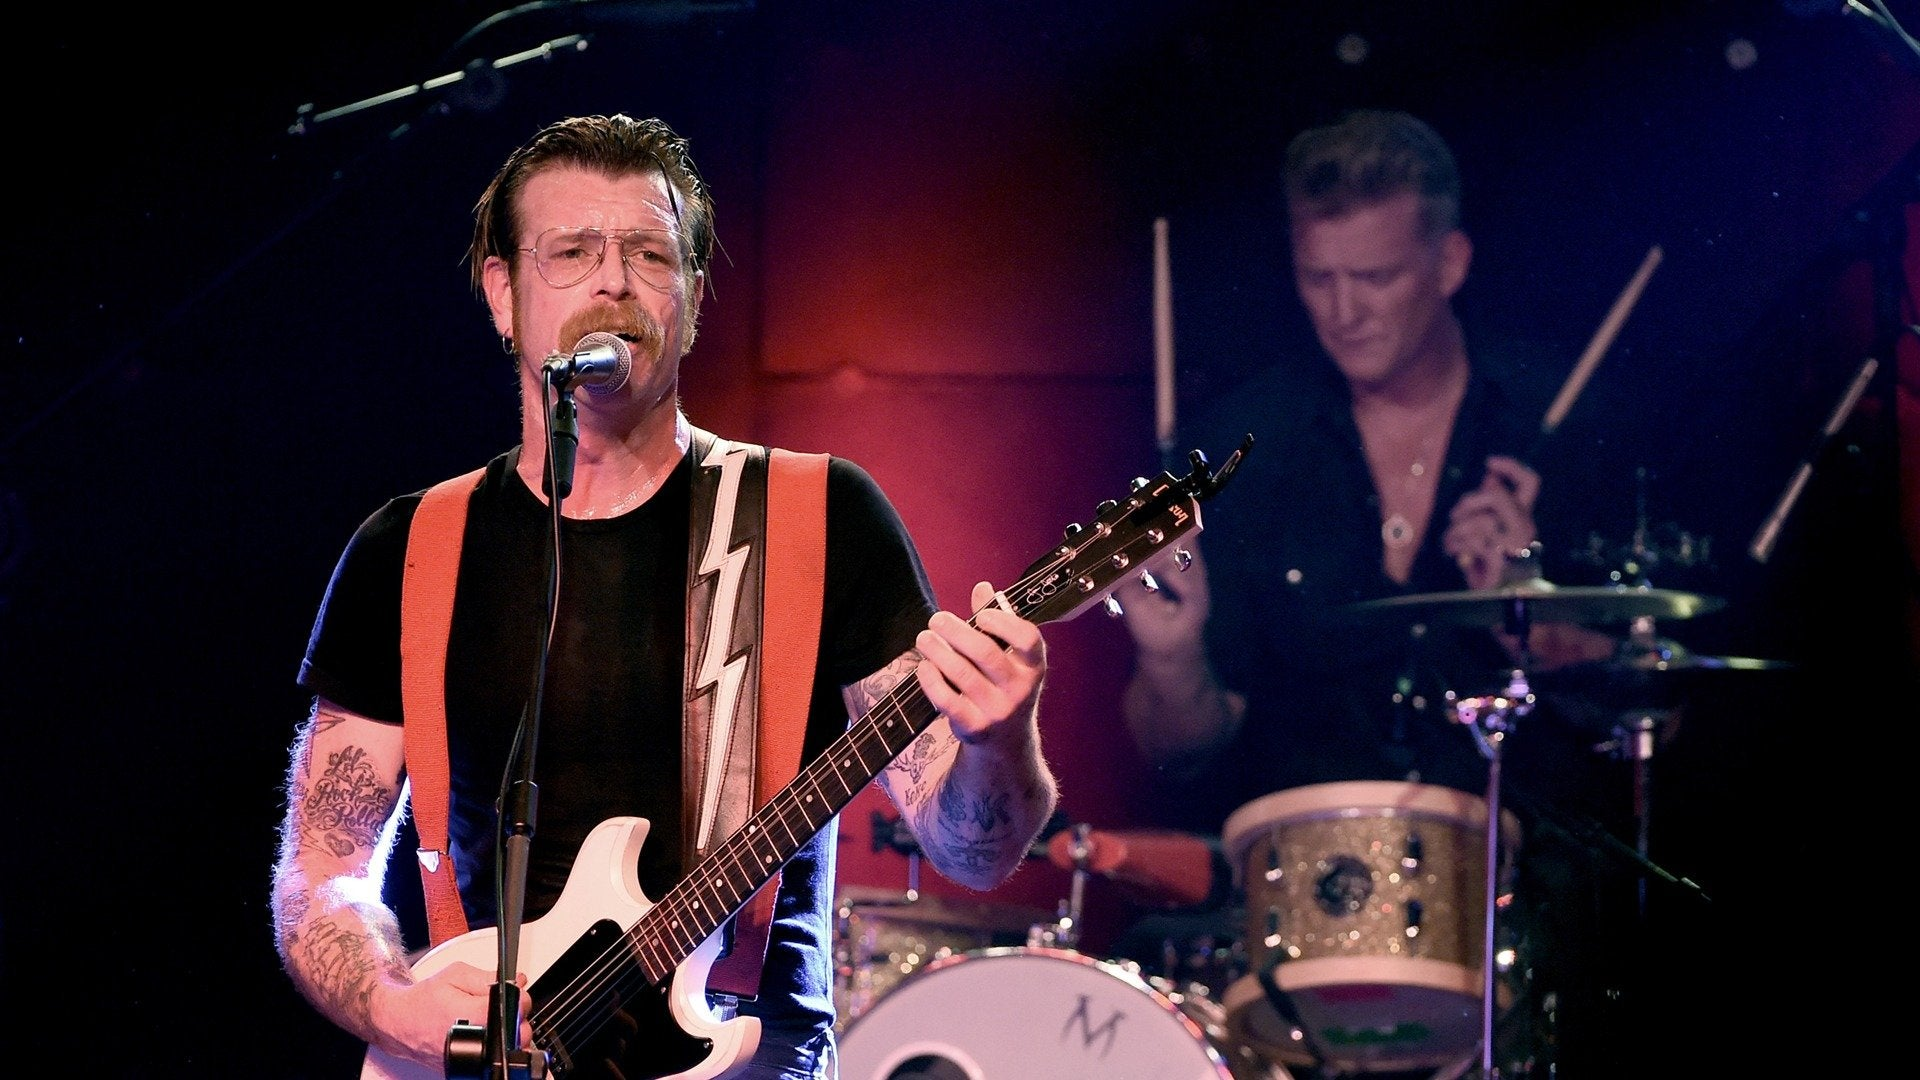 Eagles of Death Metal: I Love You All the Time: Live in Paris 2016